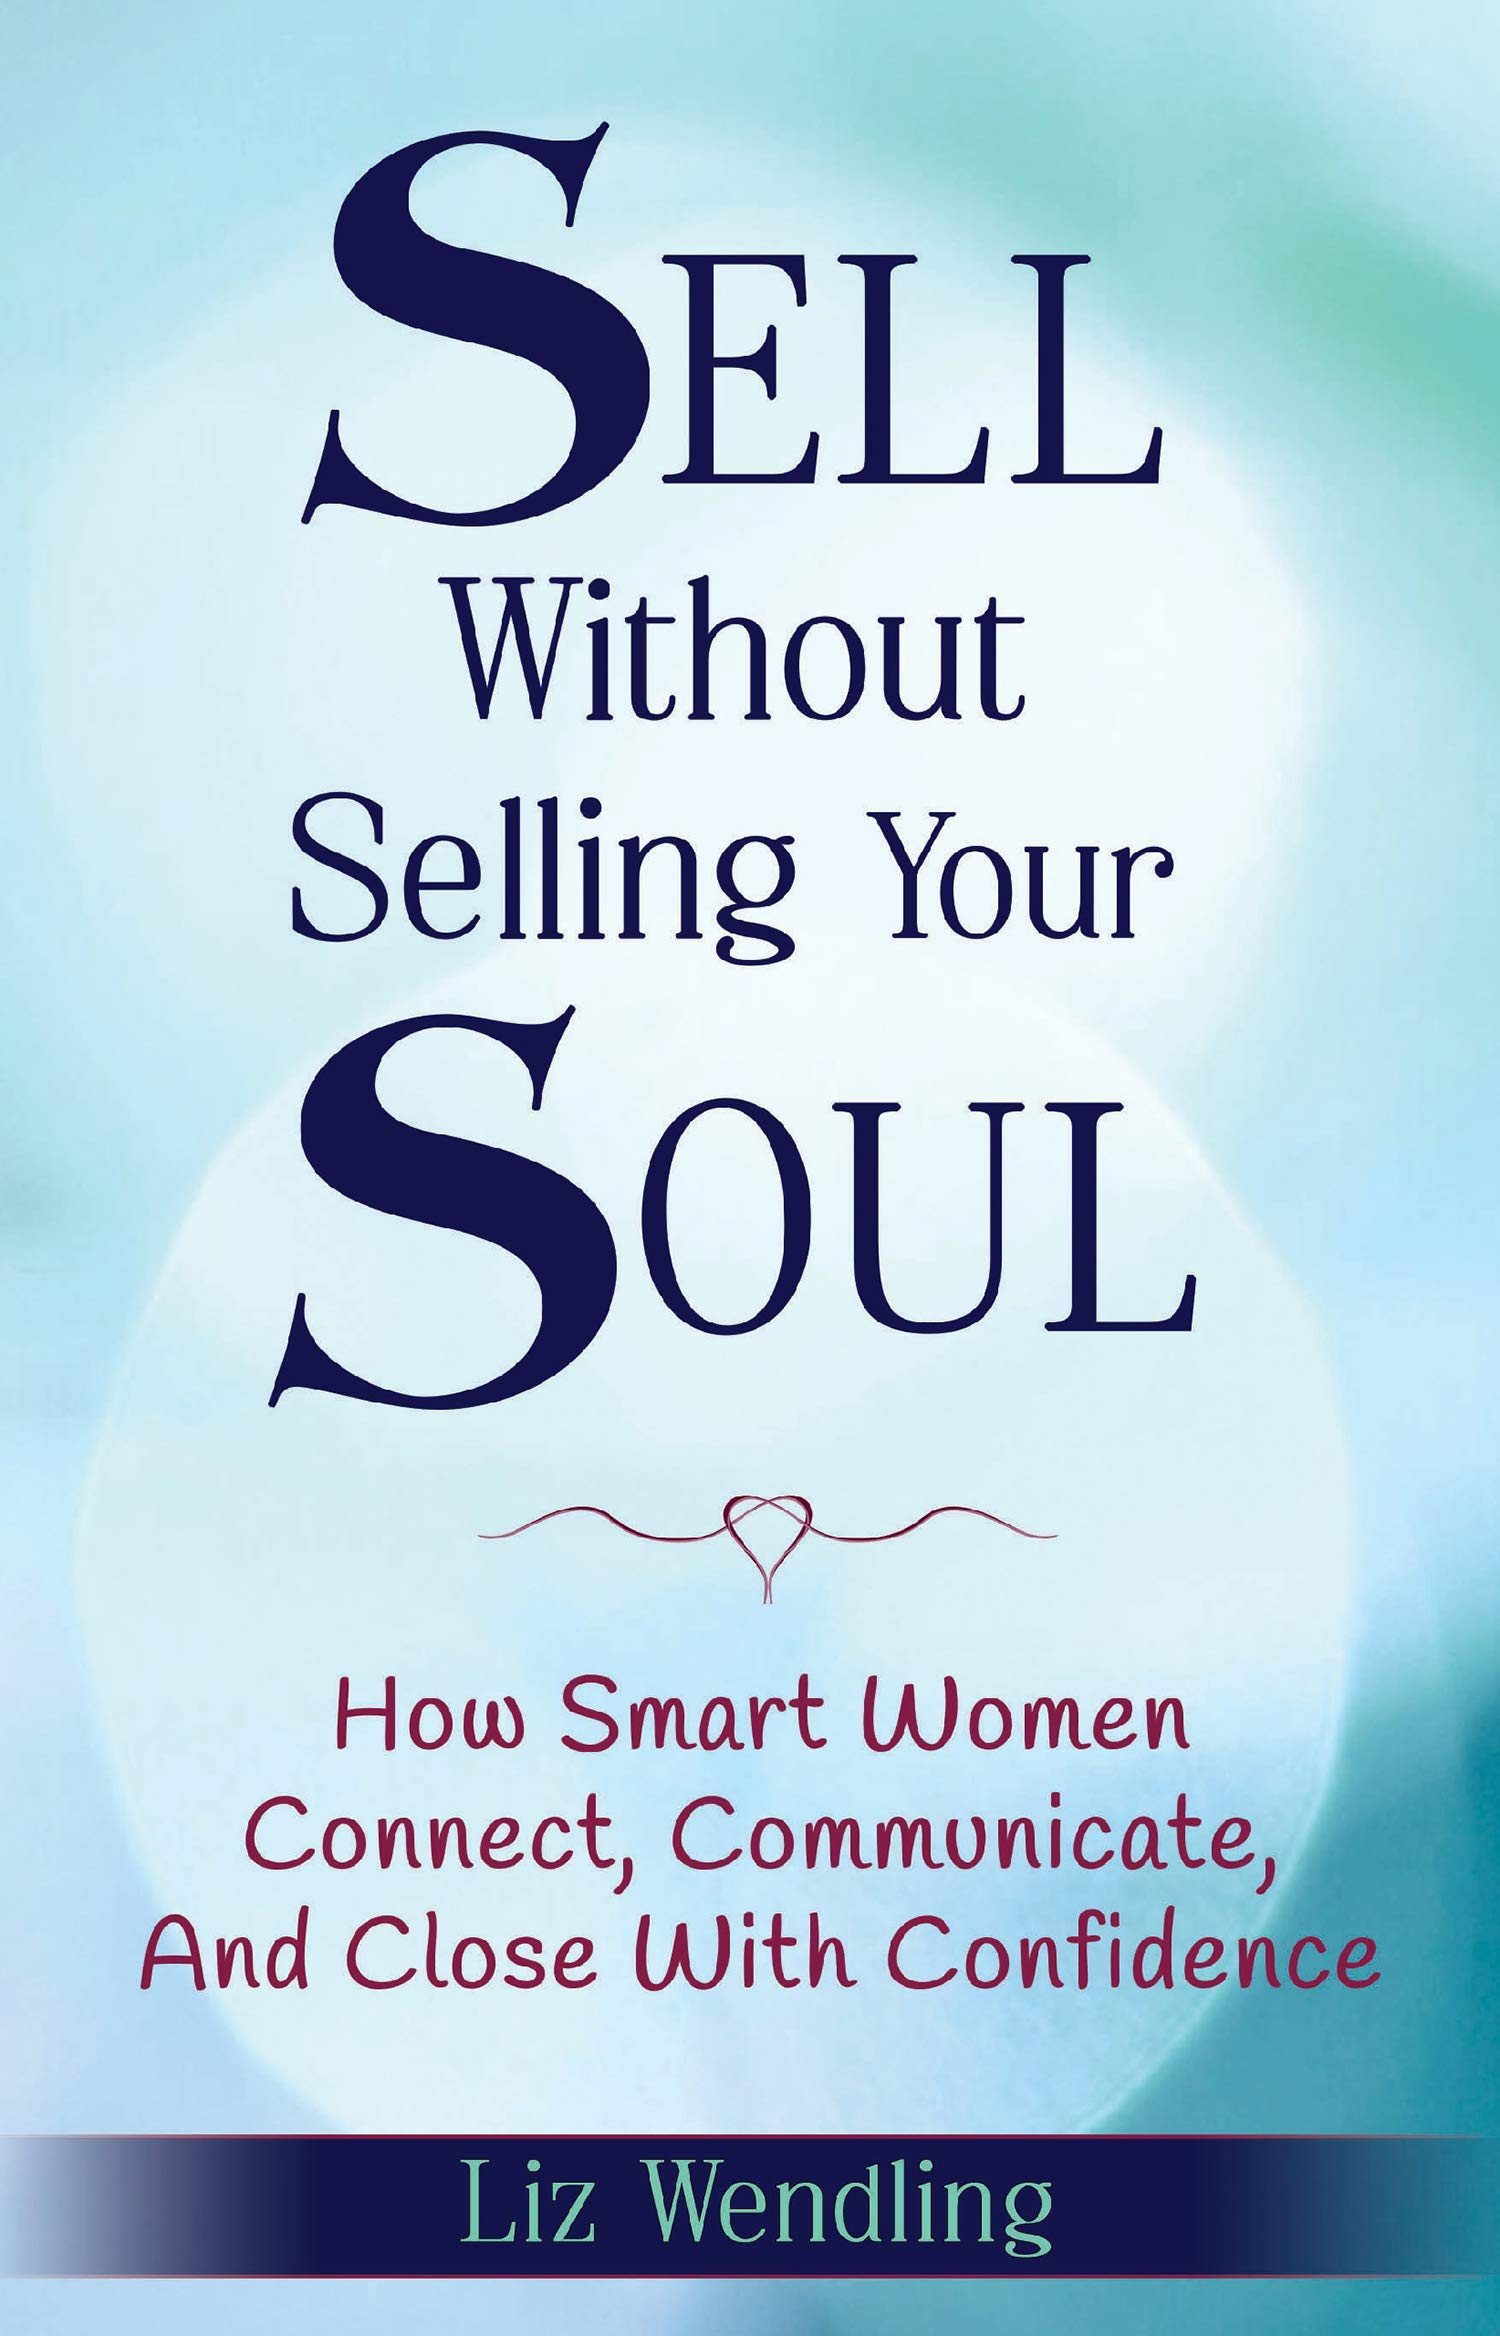 Sell Without Selling Your Soul: How Smart Women Connect, Communicate, And Close With Confidence